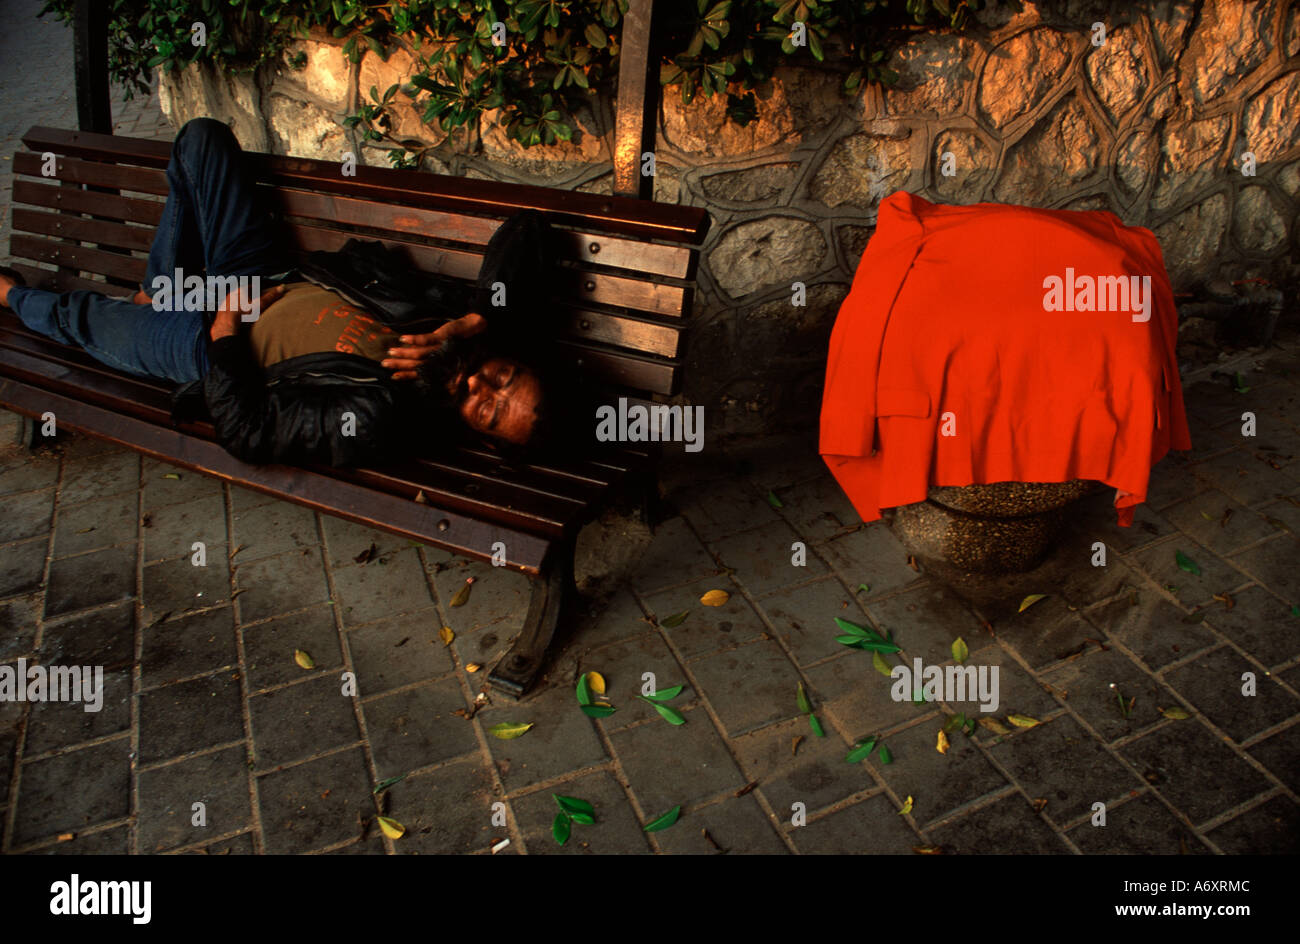 A homeless person sleeping on a bench downtown Tel Aviv Israel - Stock Image